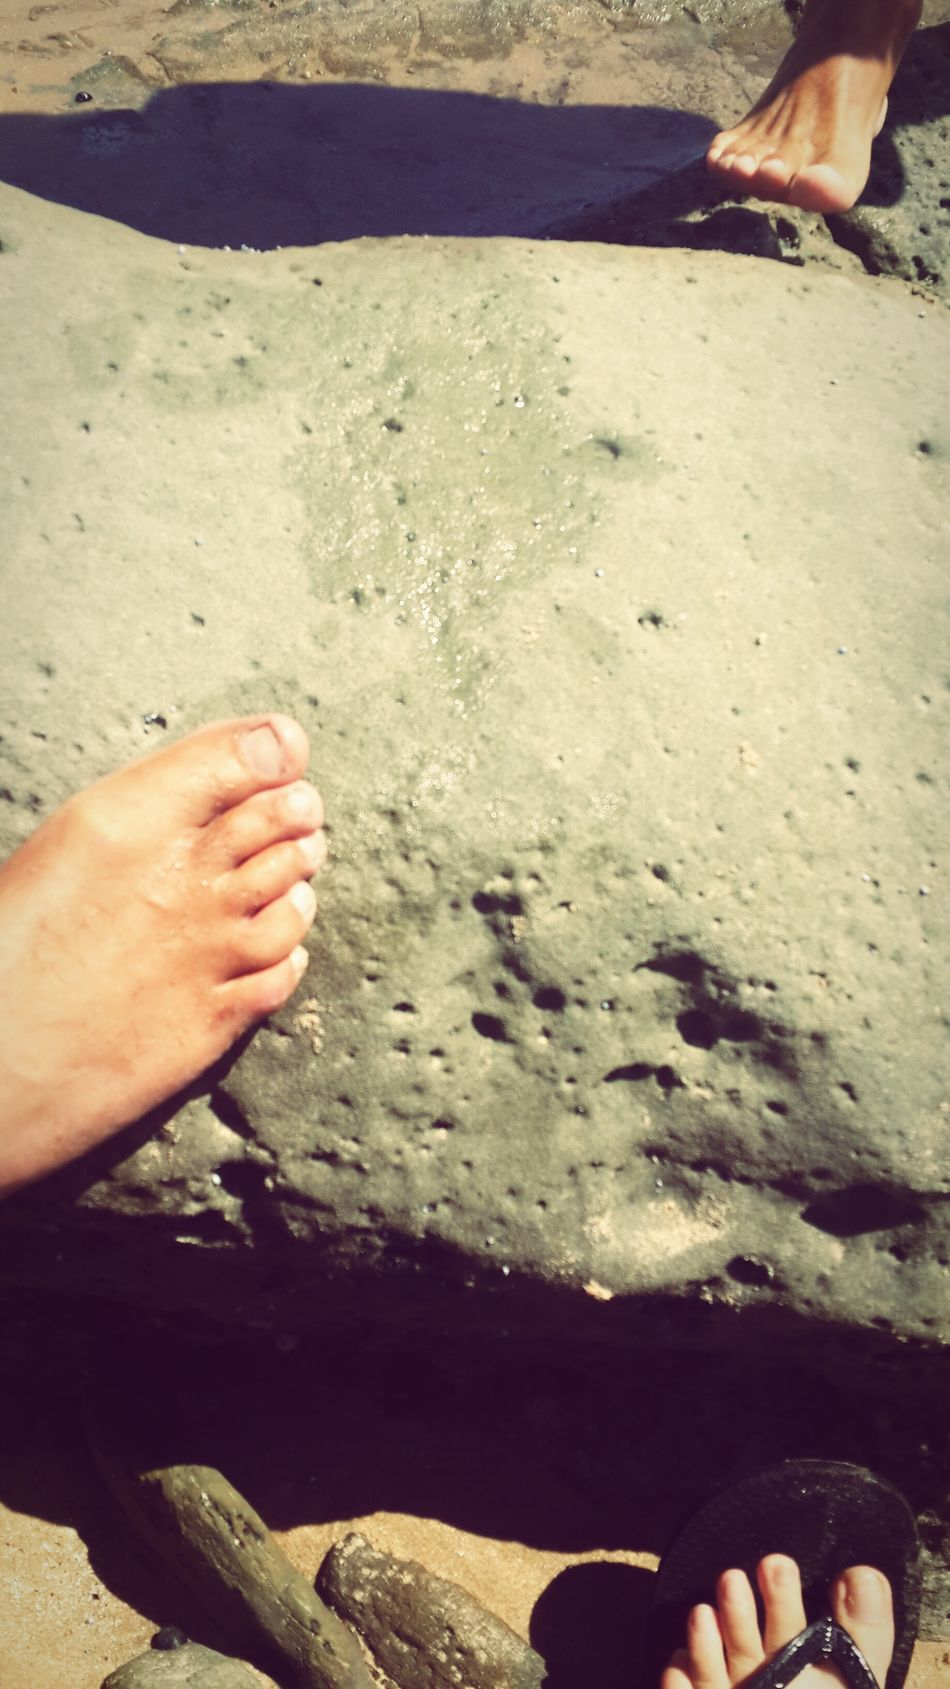 Feet bu the sea Relaxing Taking Photos Enjoying Life How's The Weather Today? Hanging Out Beach Being A Beach Bum